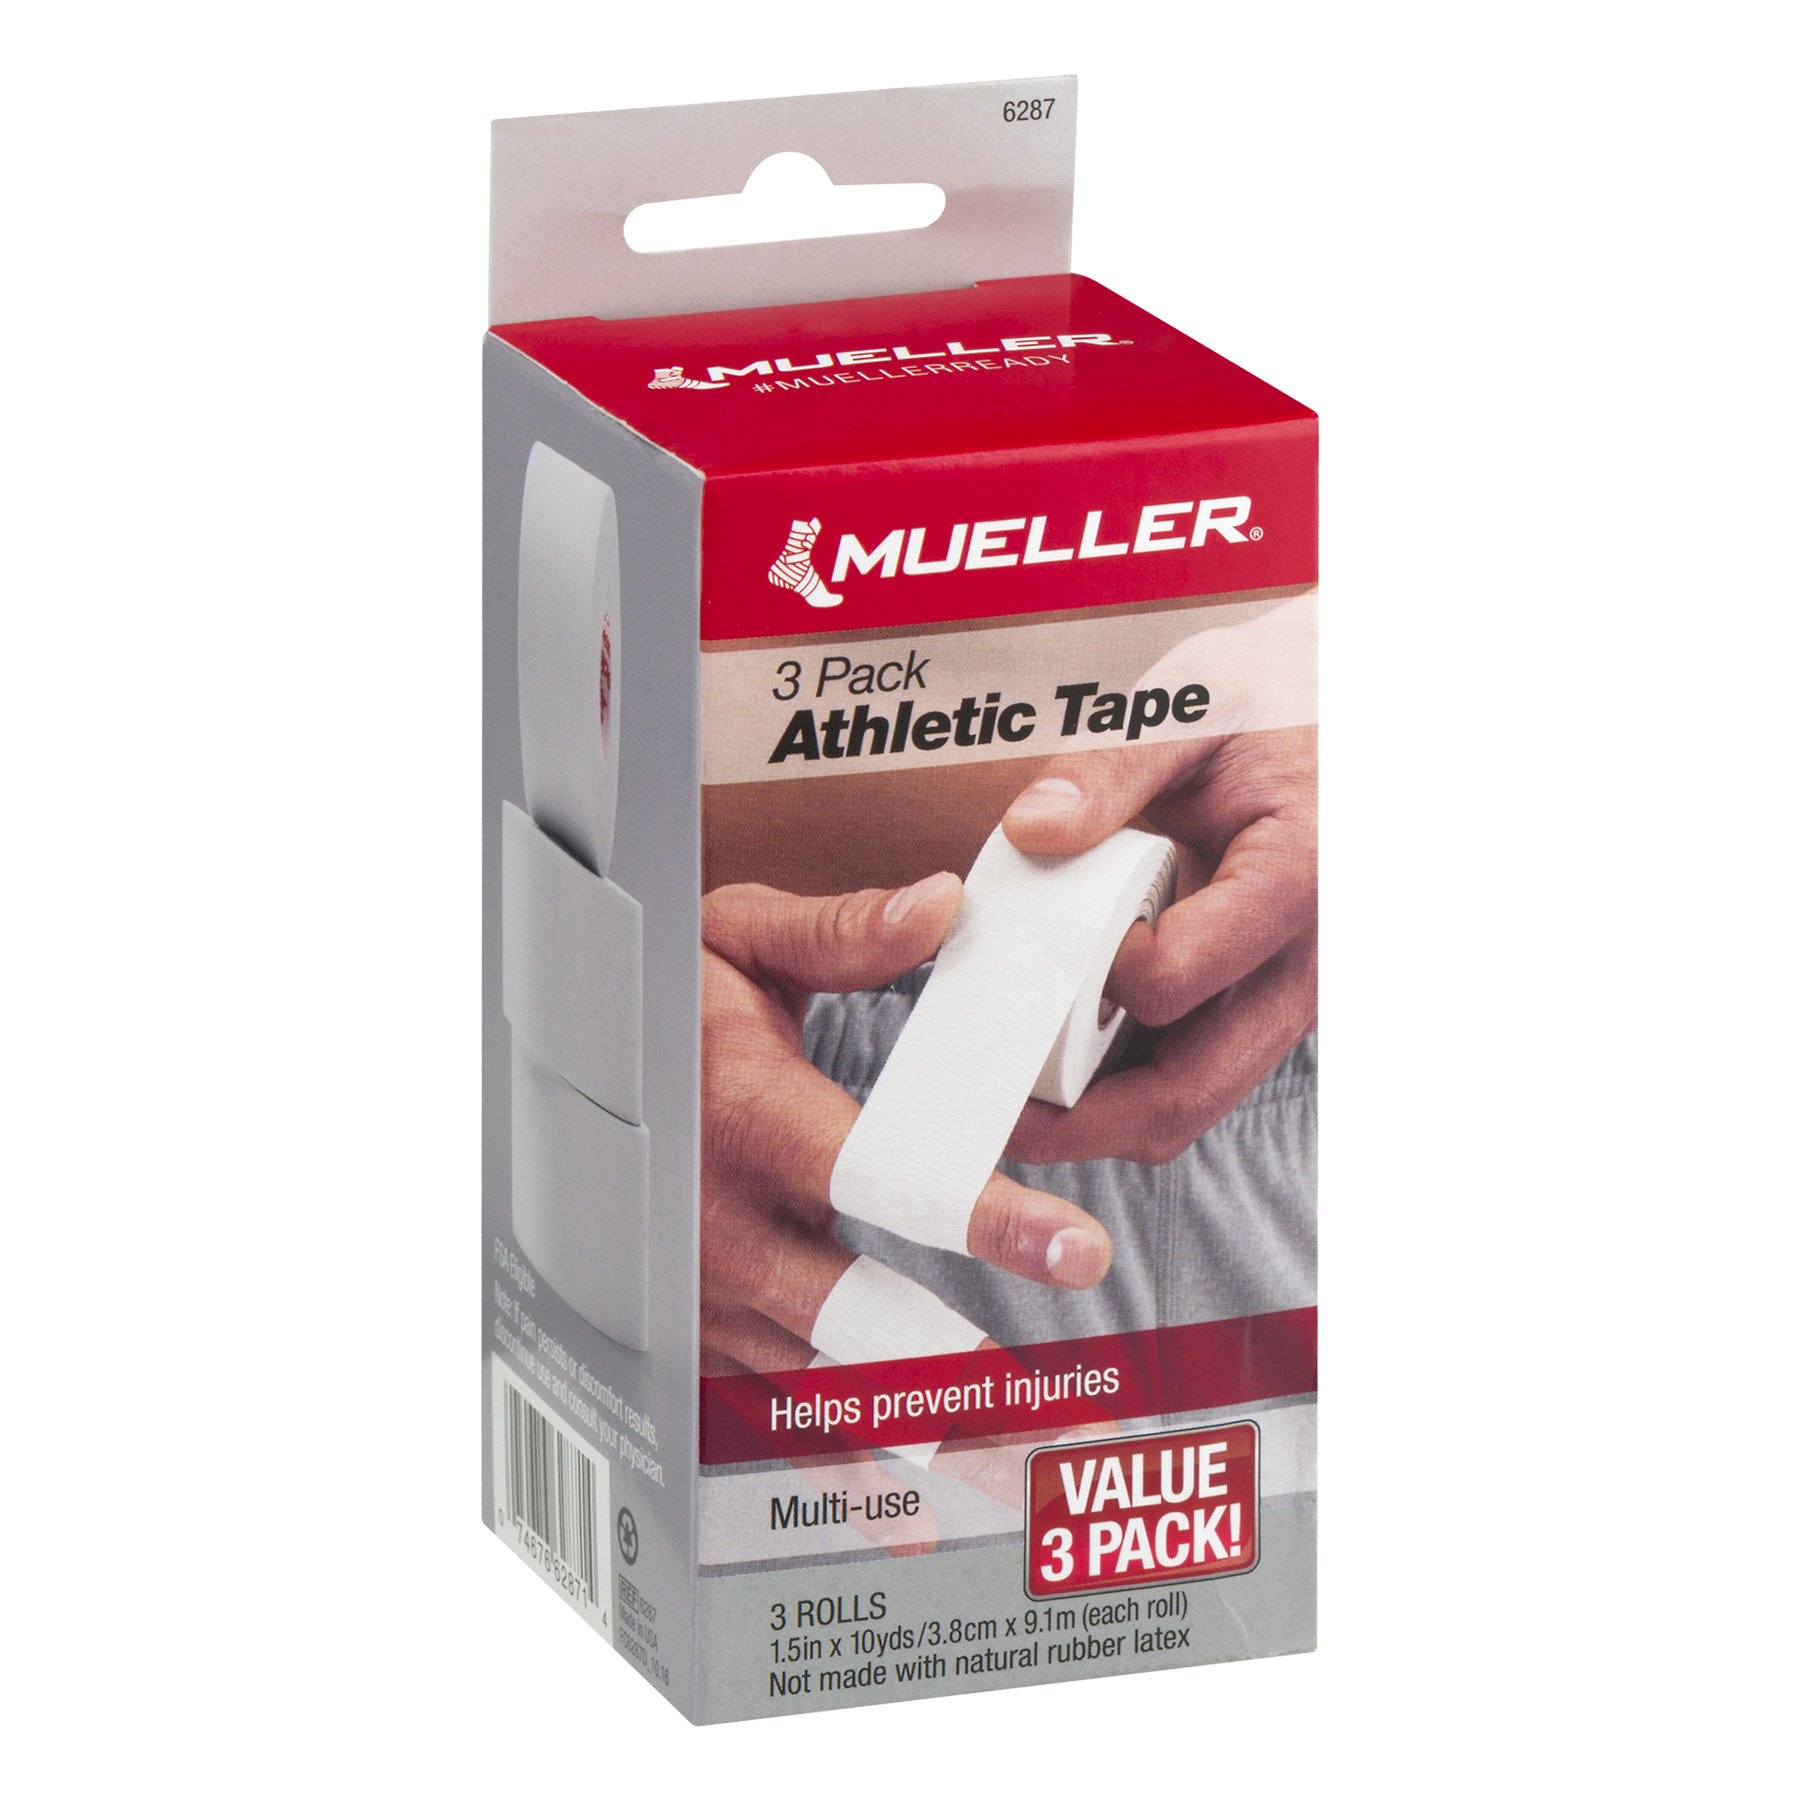 Mueller Athletic Tape Rolls Value Pack, 3 count